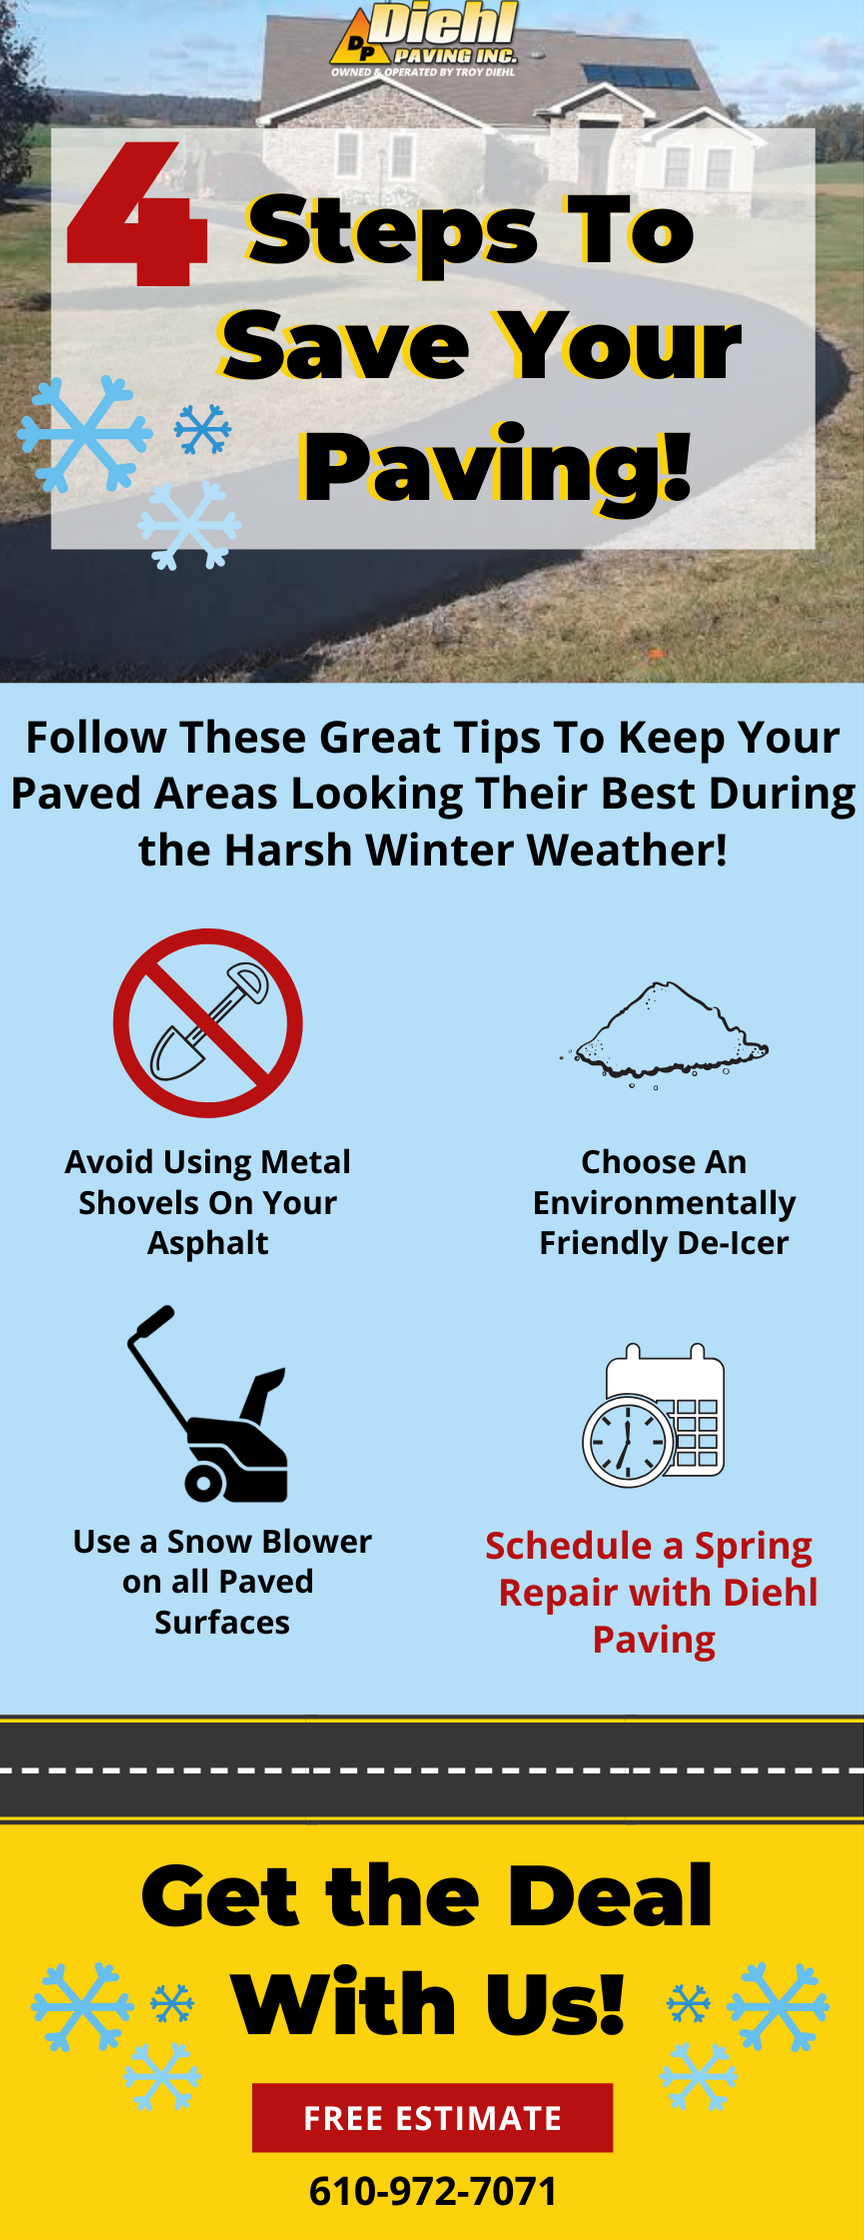 4 Steps To Save Your Paving! ❄️ 1